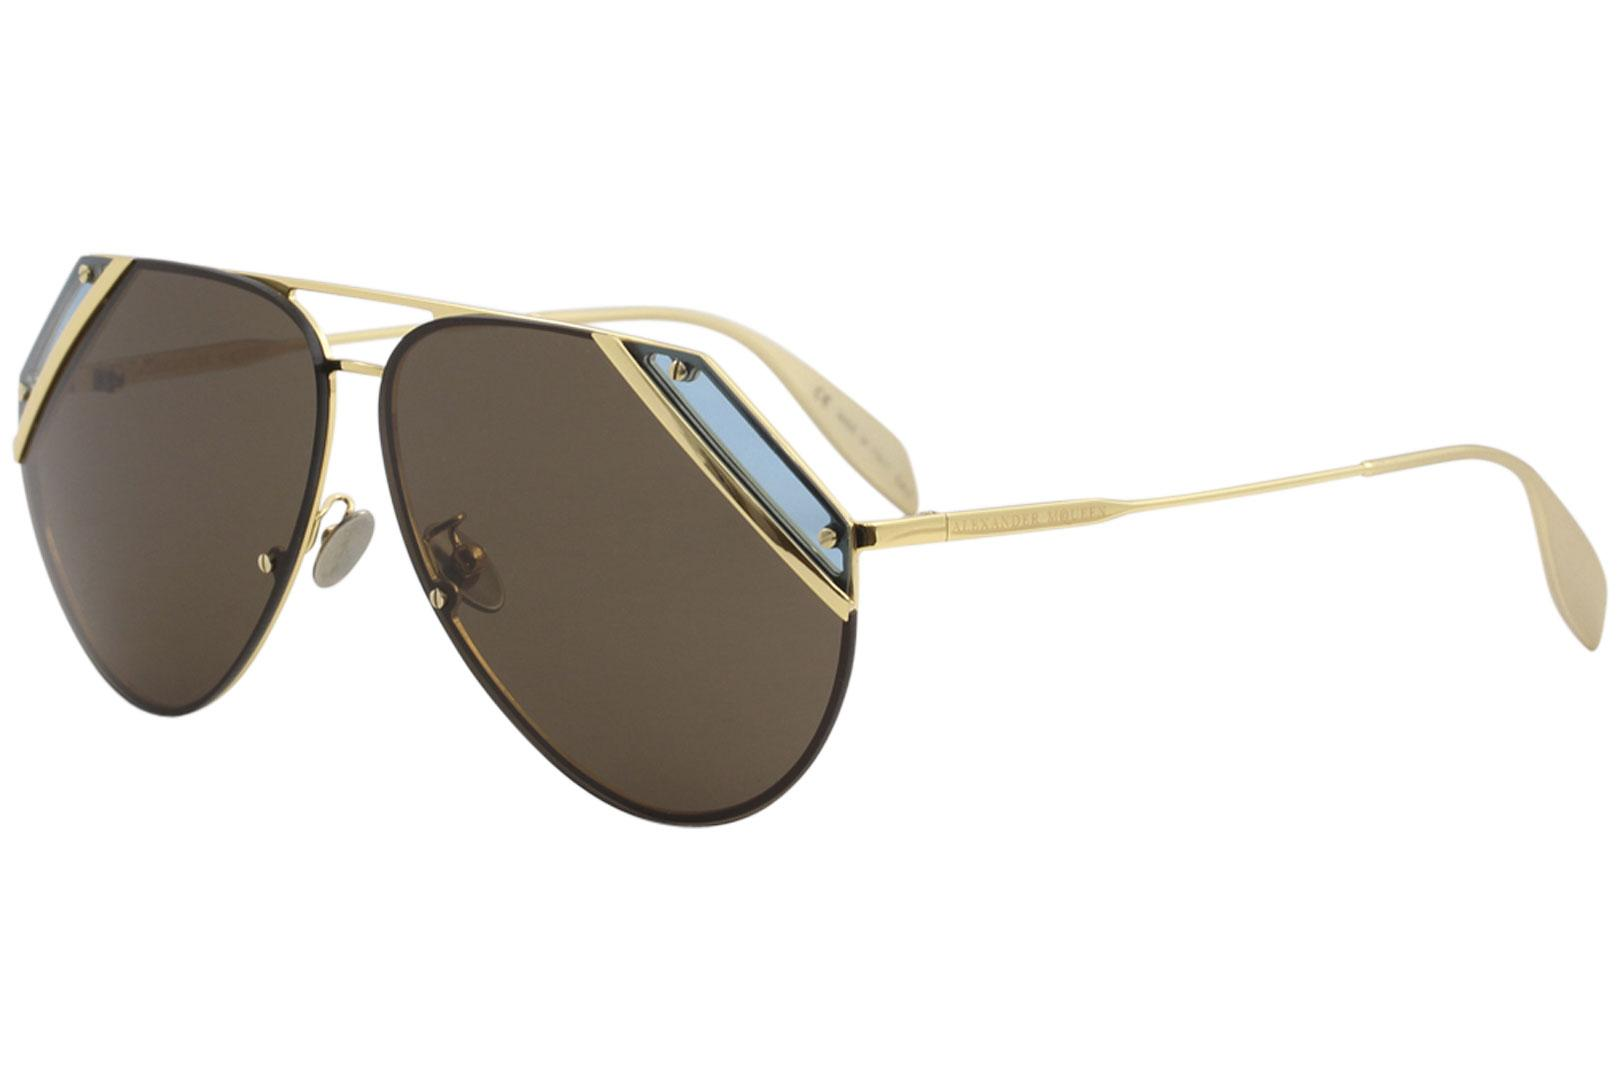 Image of Alexander McQueen Edge AM0092S AM/0092/S 008 Gold/Teal Pilot Sunglasses 65mm - Gold Teal/Brown   008 - Lens 65 Bridge 10 Temple 140mm